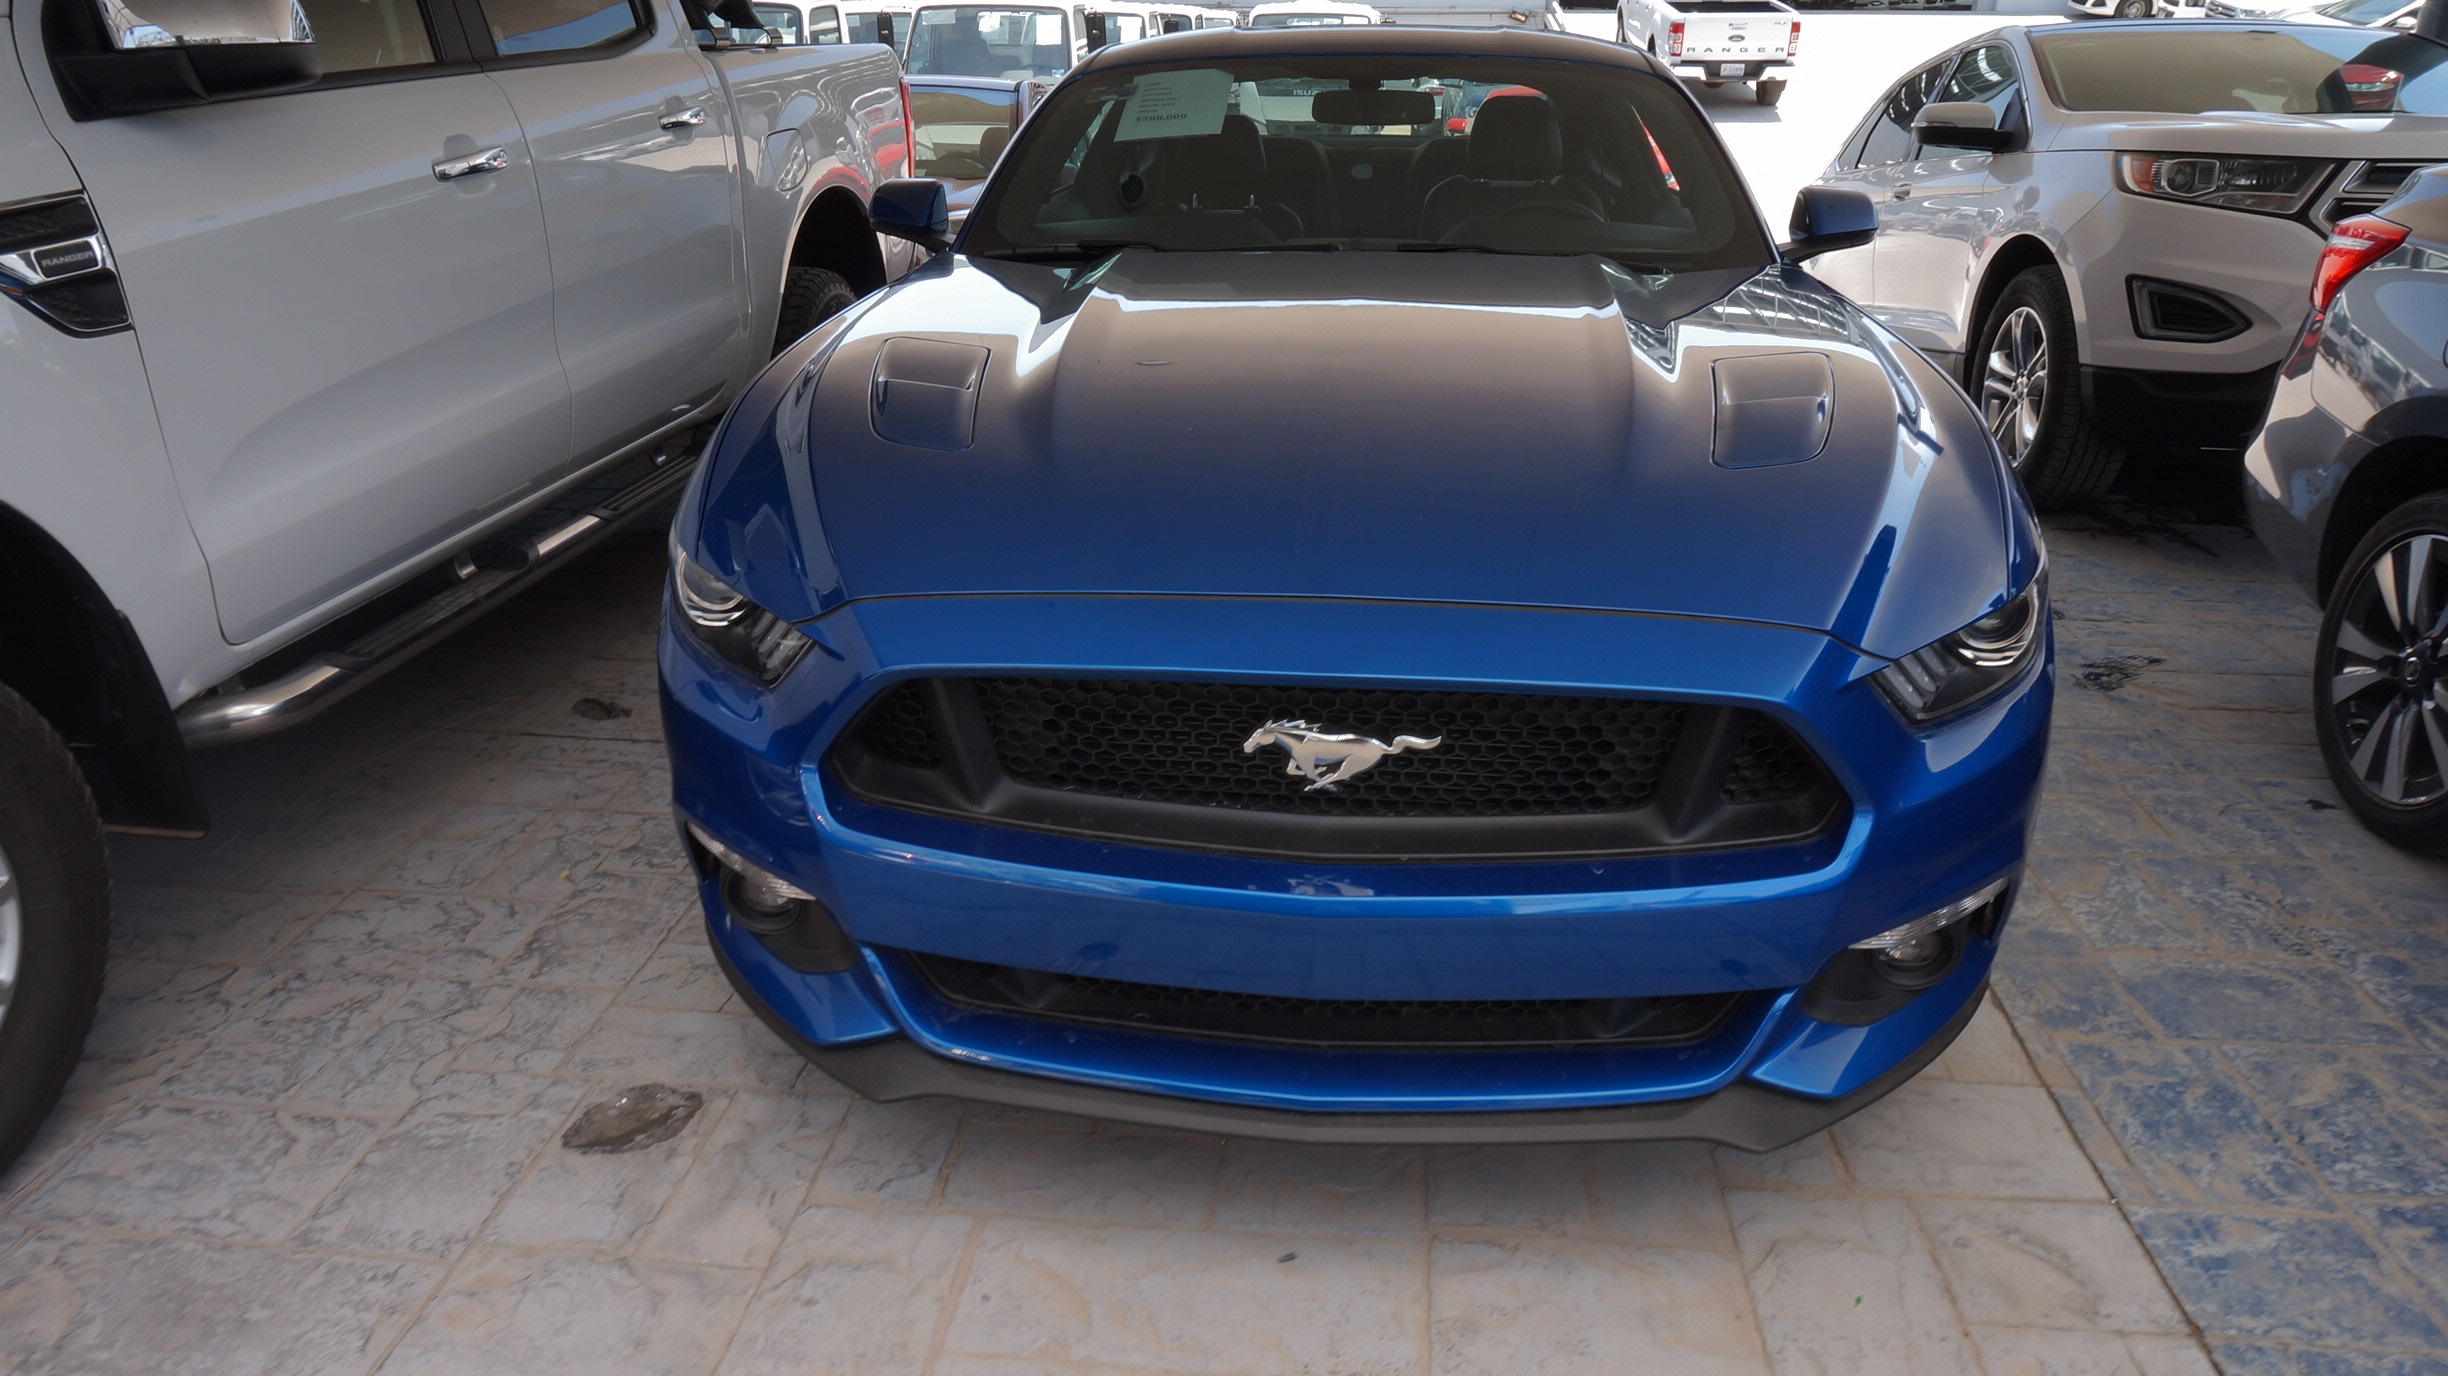 Ford Mustang Lateral izquierdo 2